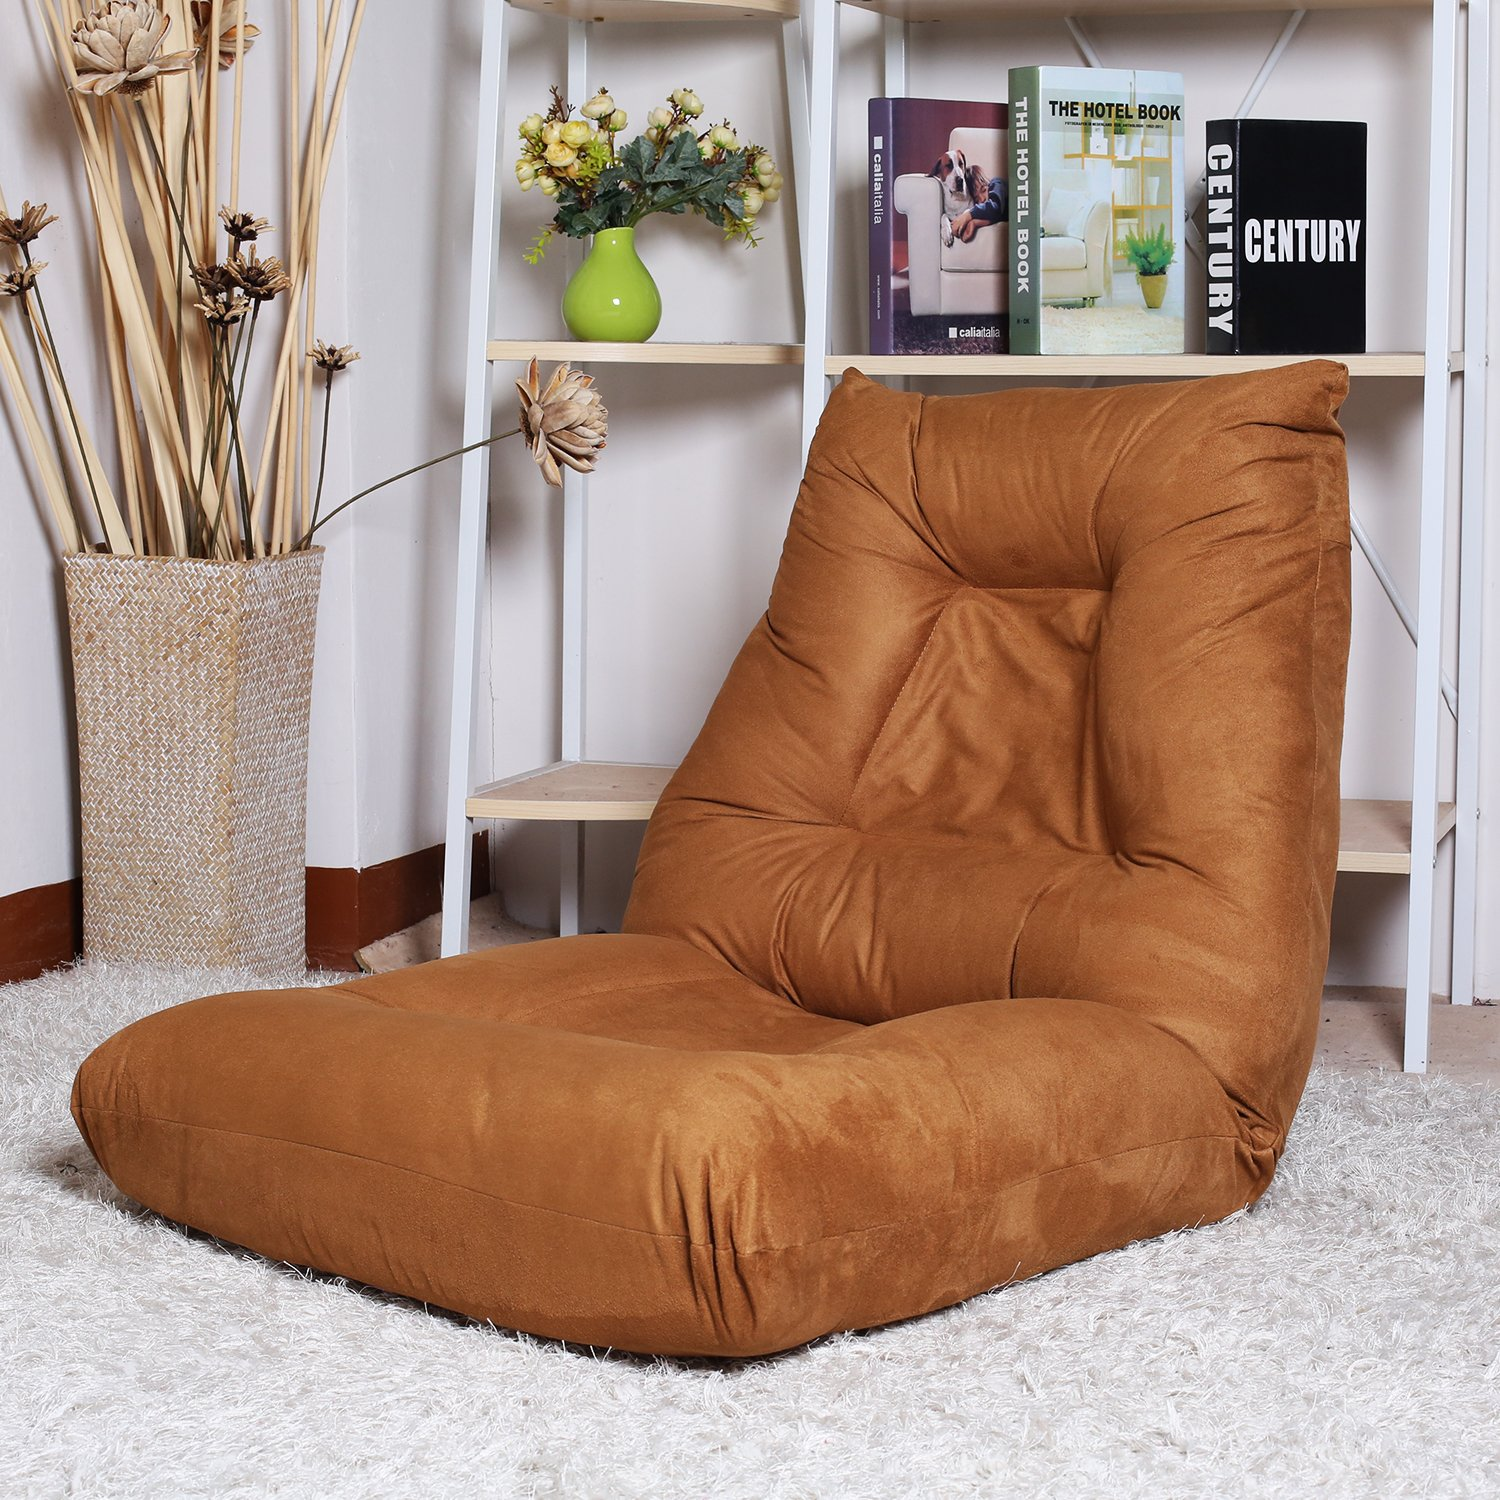 LZ LEISURE ZONE Adjustable 5-Position Folding Floor Chair Lazy Sofa Cushion Gaming Chair (Coffee) by LZ LEISURE ZONE